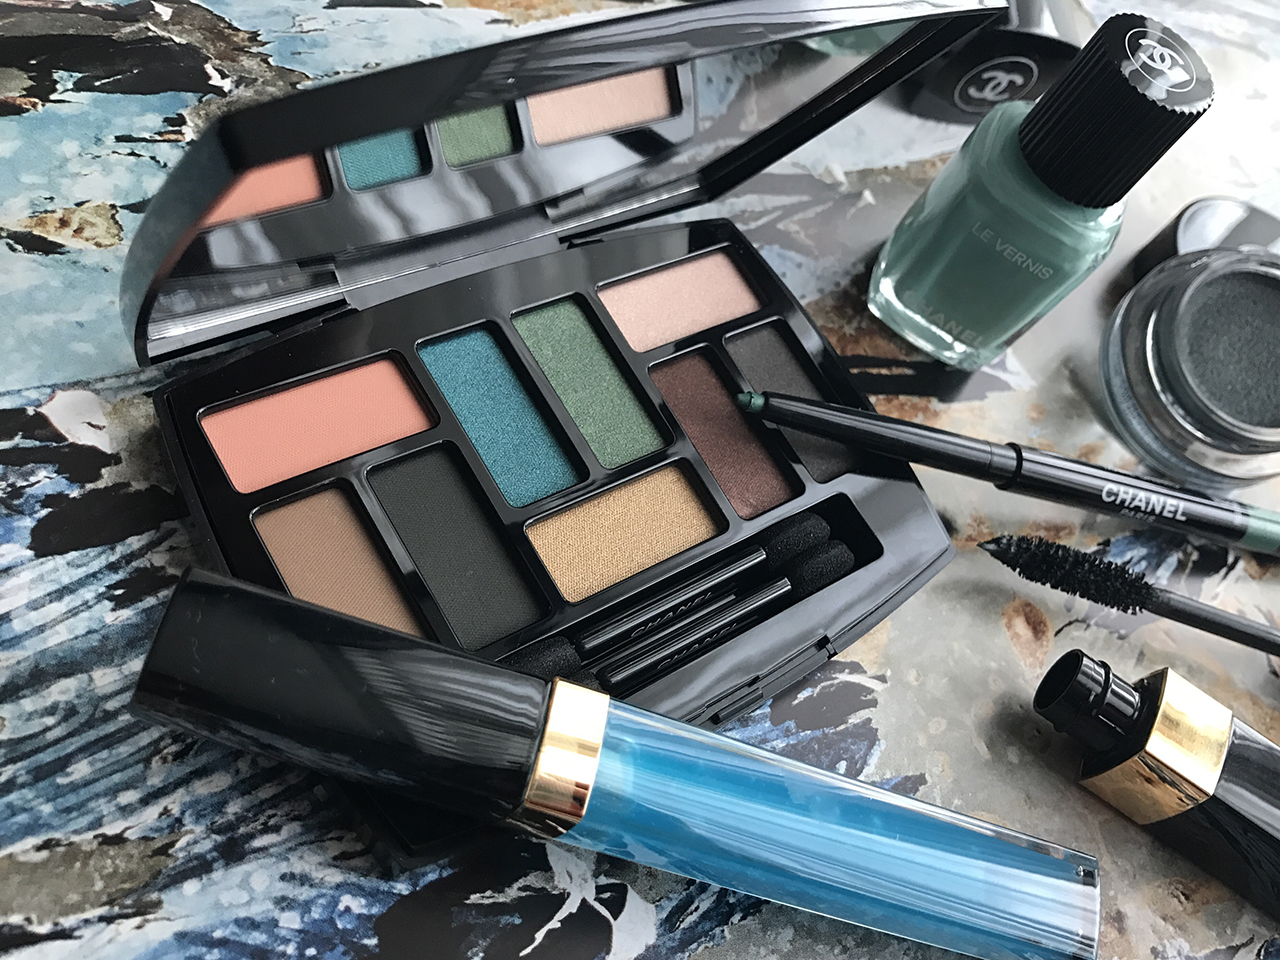 Chanel Les 9 Ombres Palette Edition 1 Affresco from Neapolis Collection